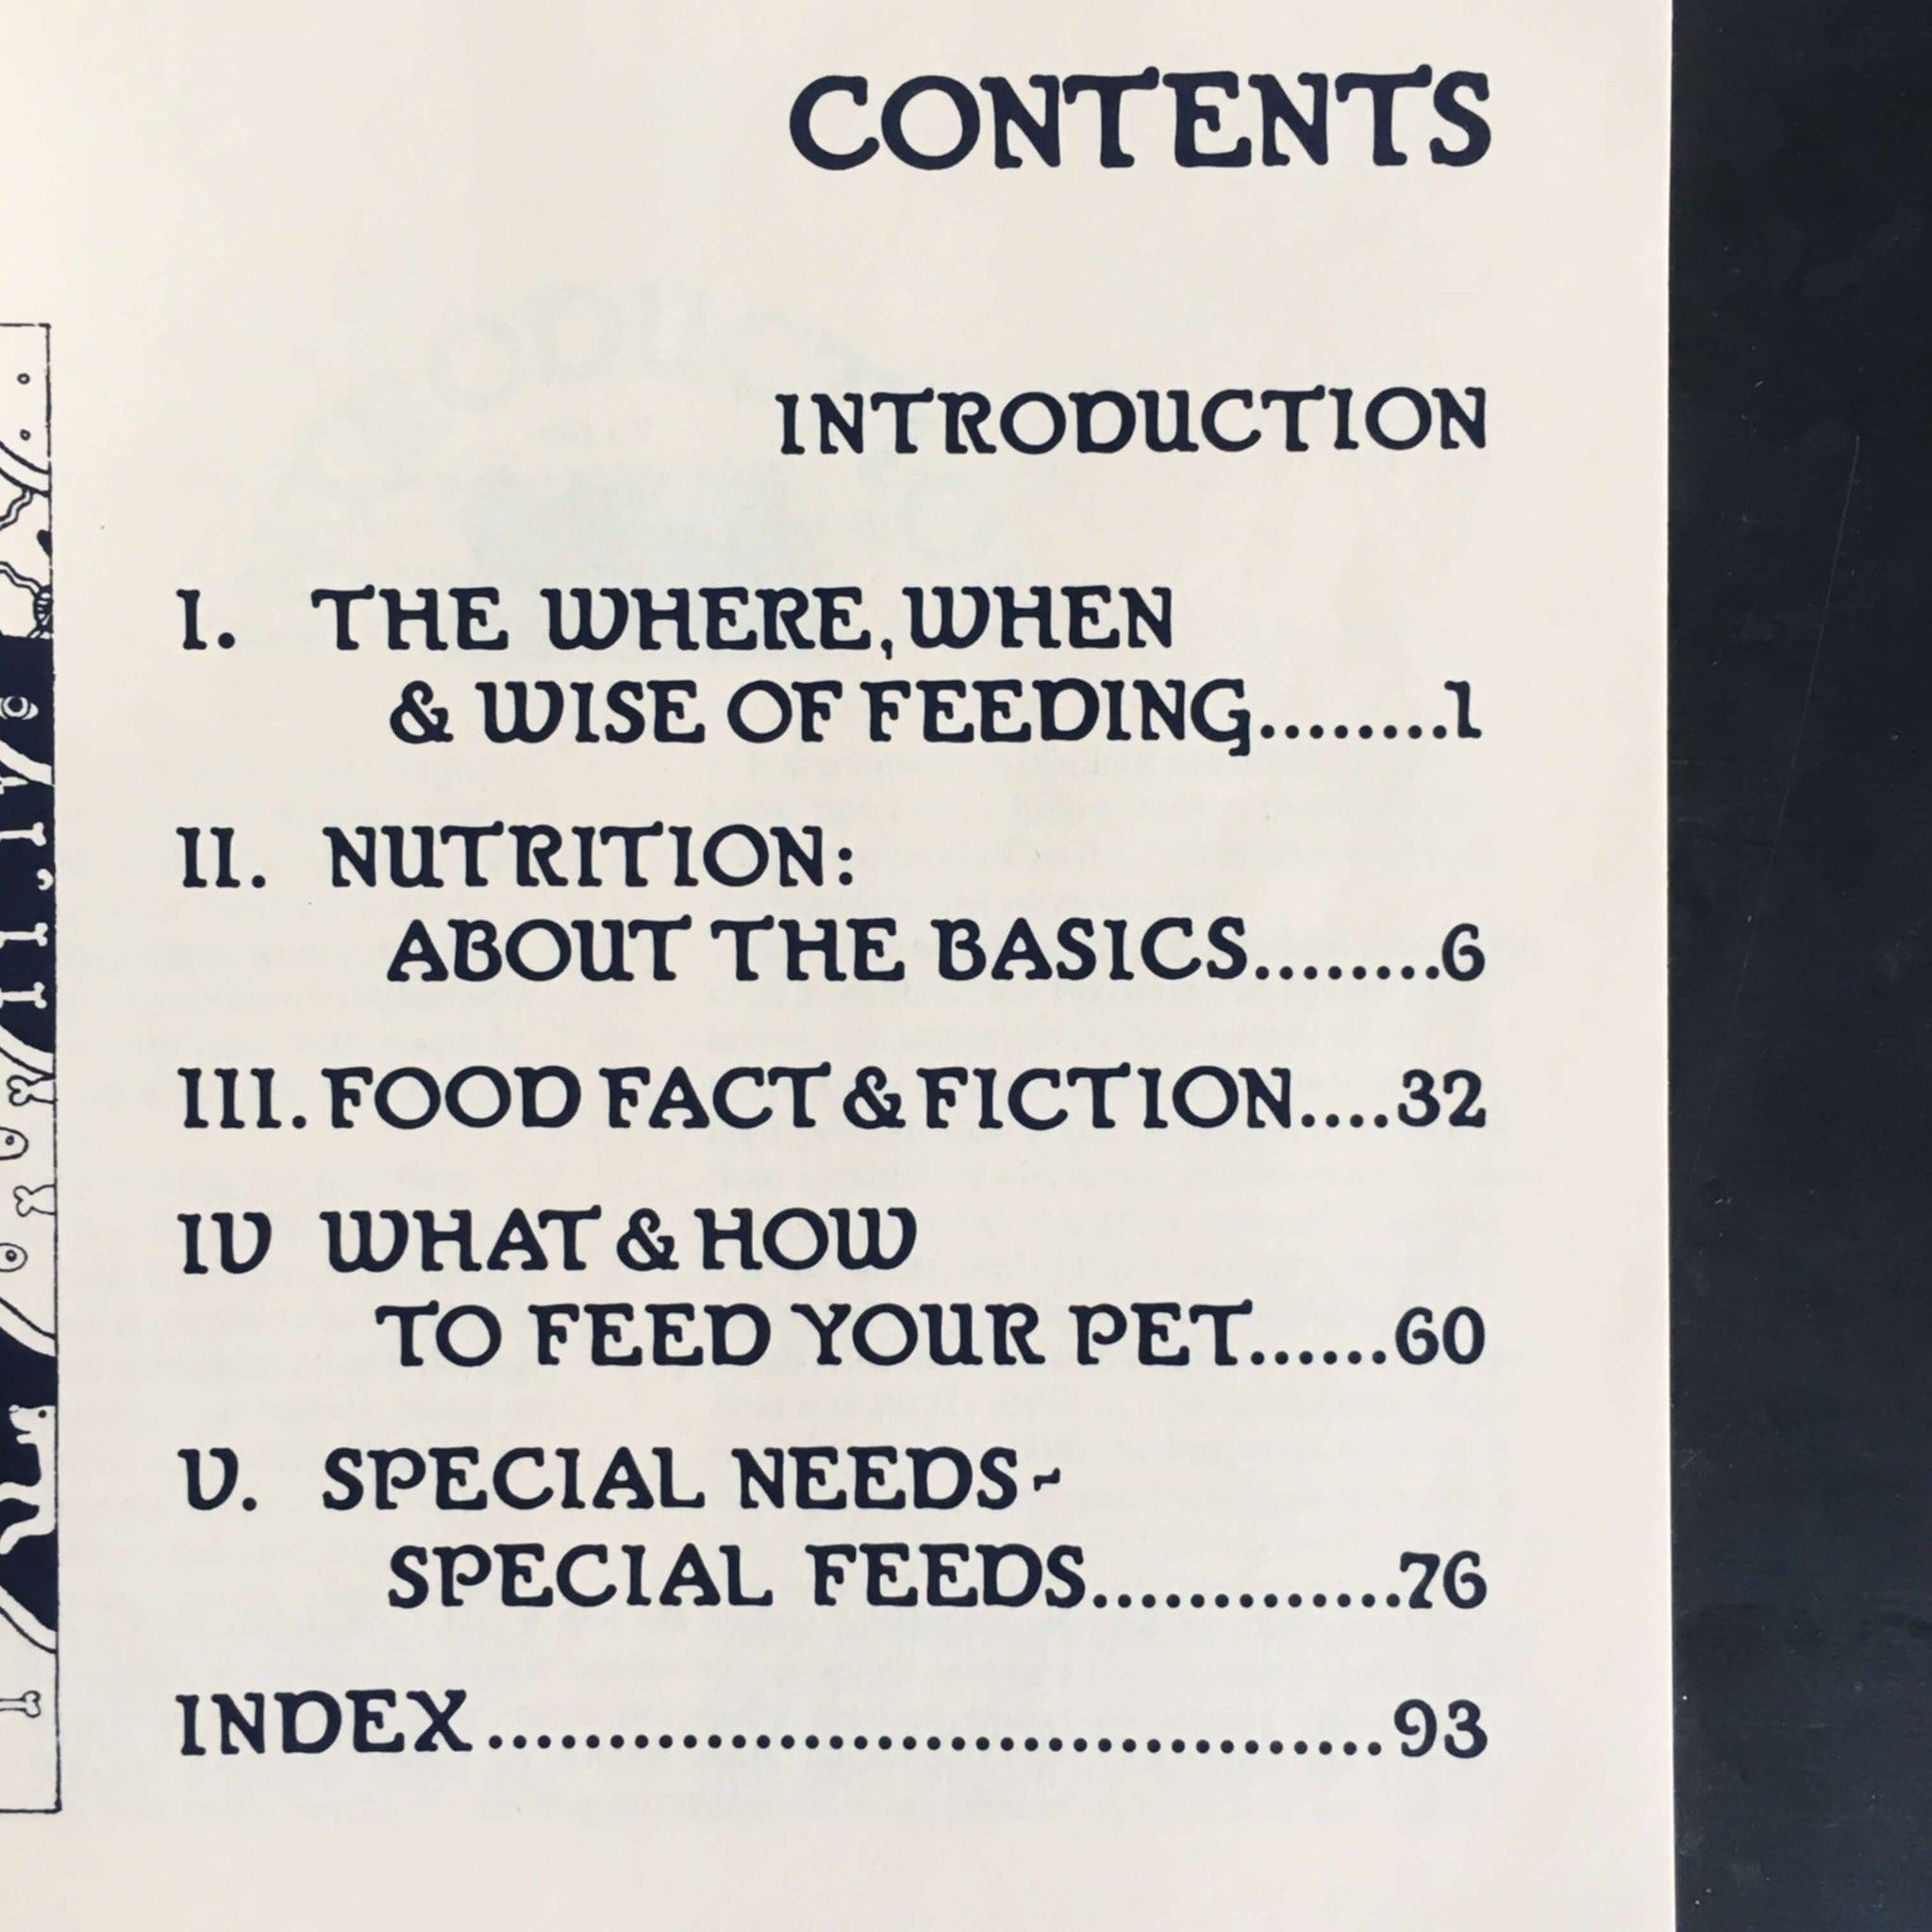 1970's Homemade Dog and Cat Food Cookbook - Dr. Terri McGinnis' Dog & Cat Good Food Book